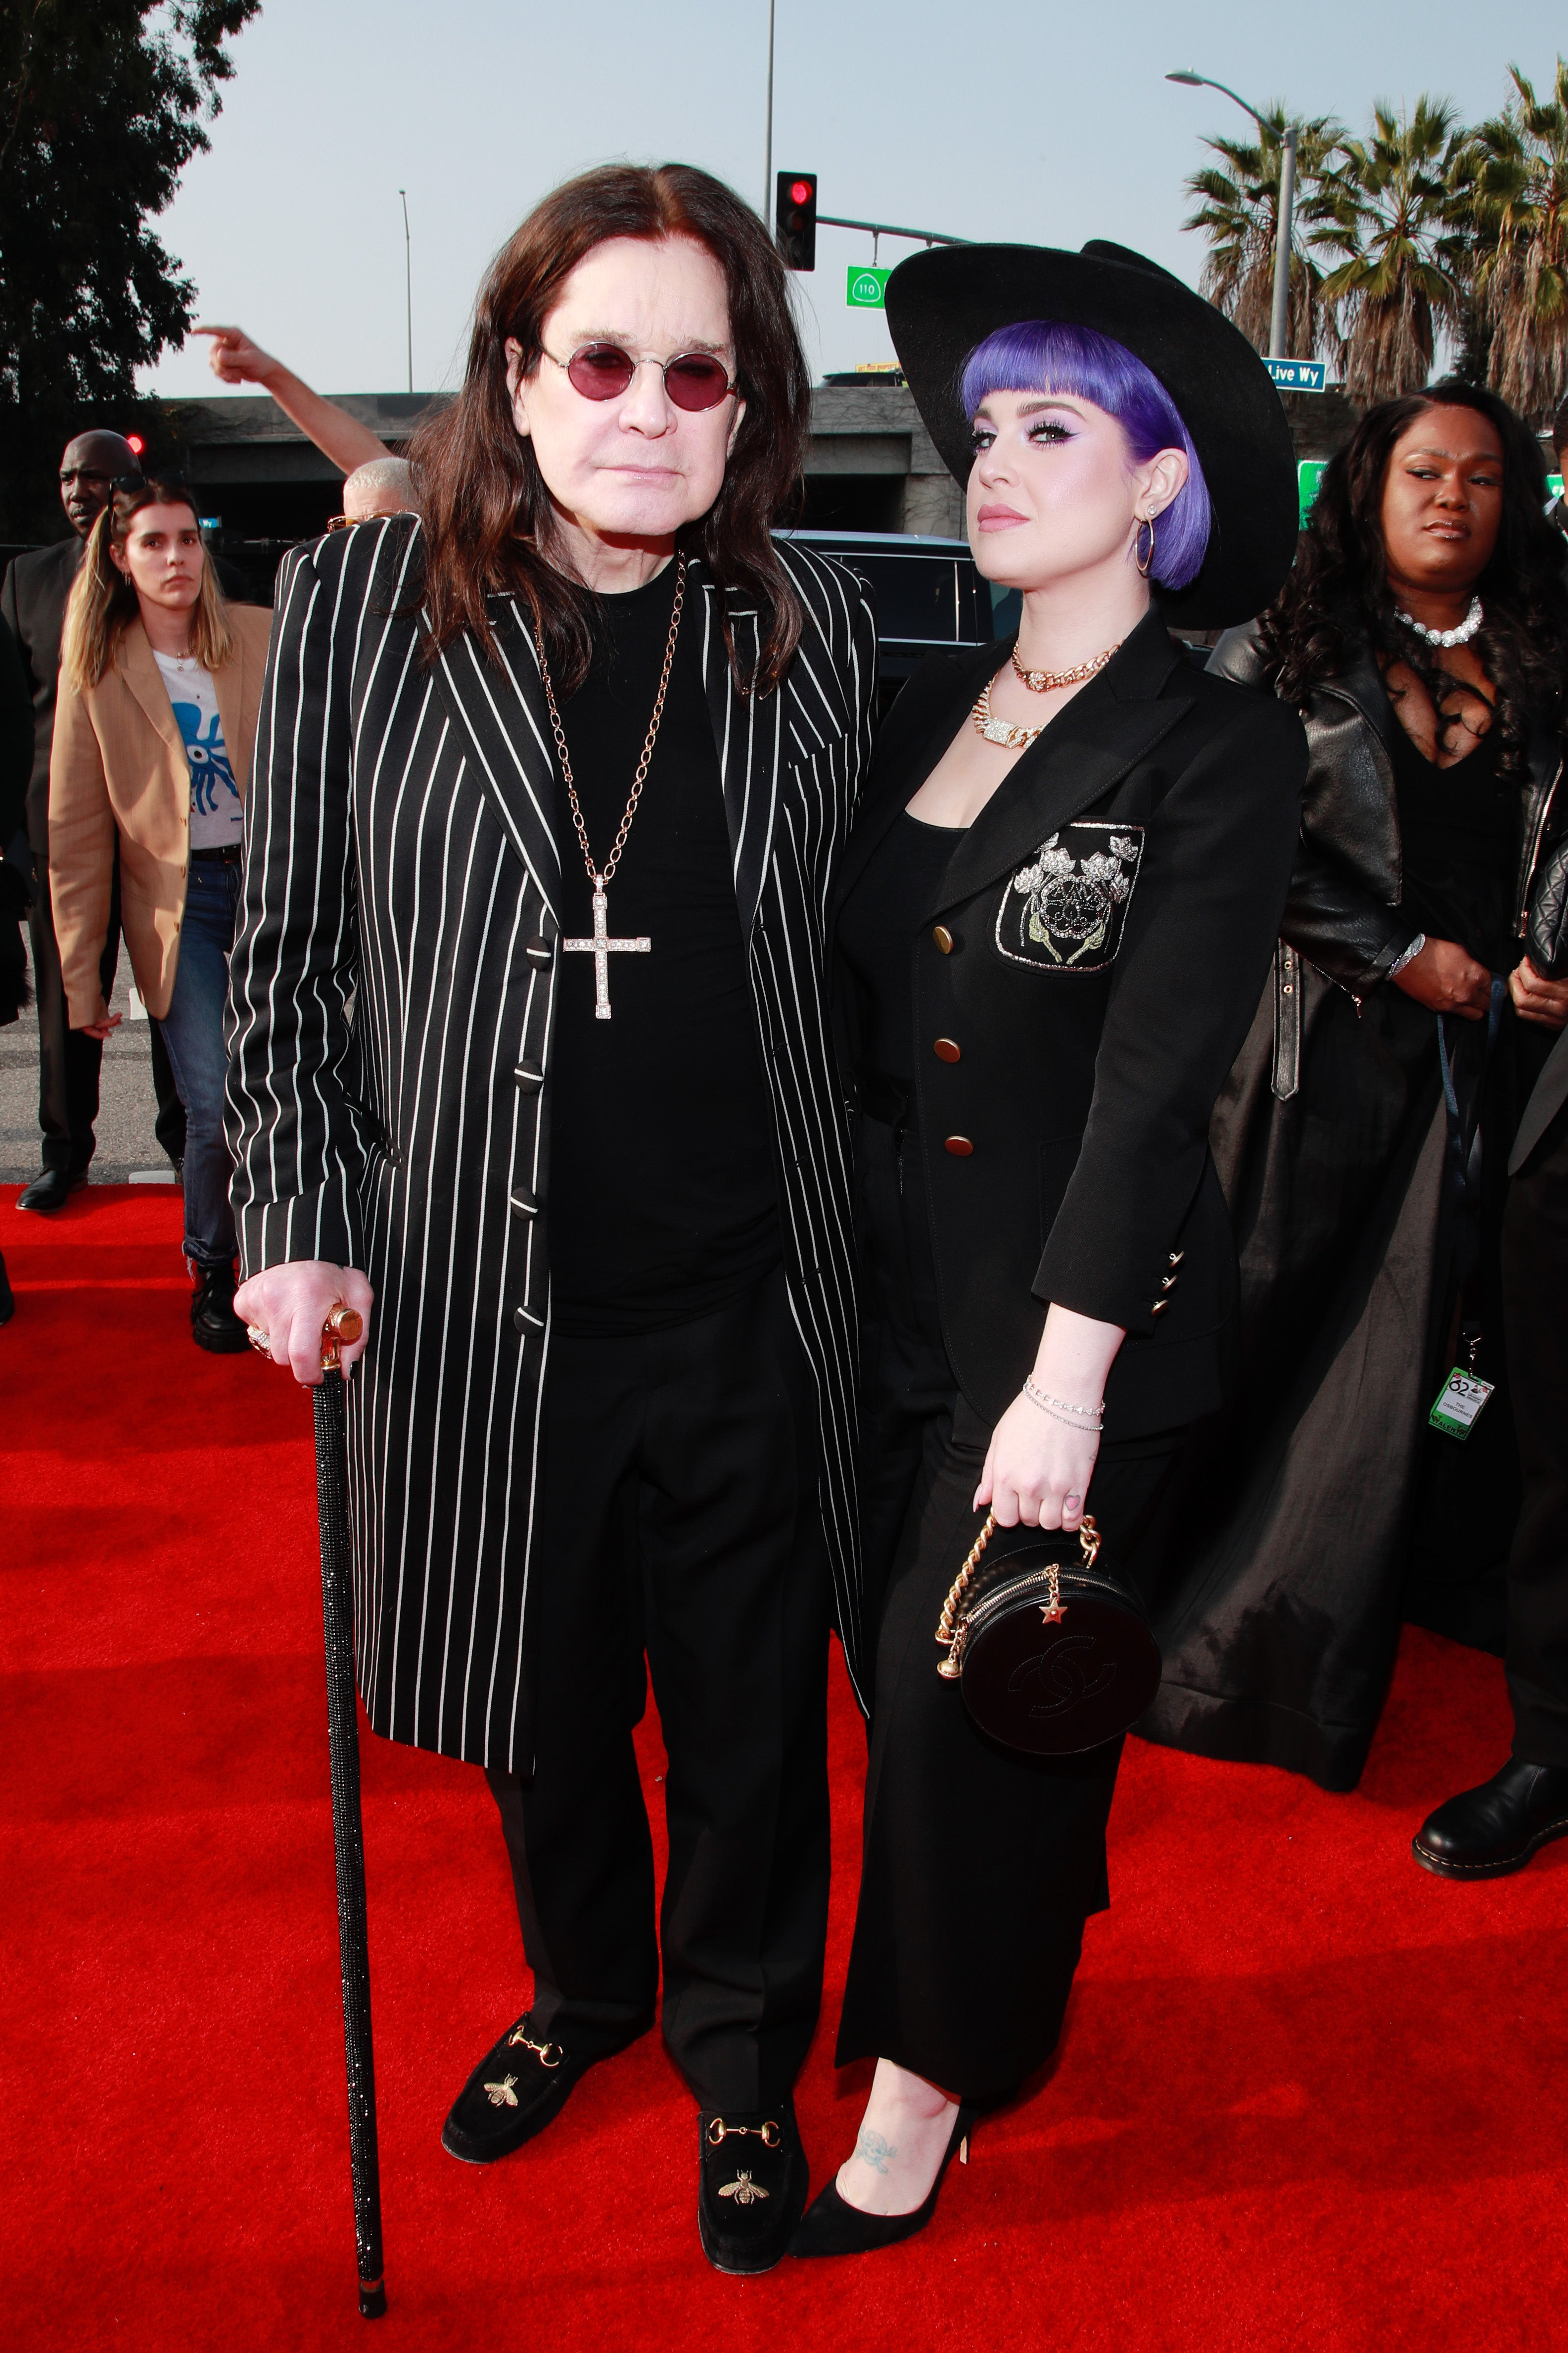 Ozzy Osbourne and Daughter Kelly Make GRAMMYs Appearance Following His Parkinson's Disease Diagnosis